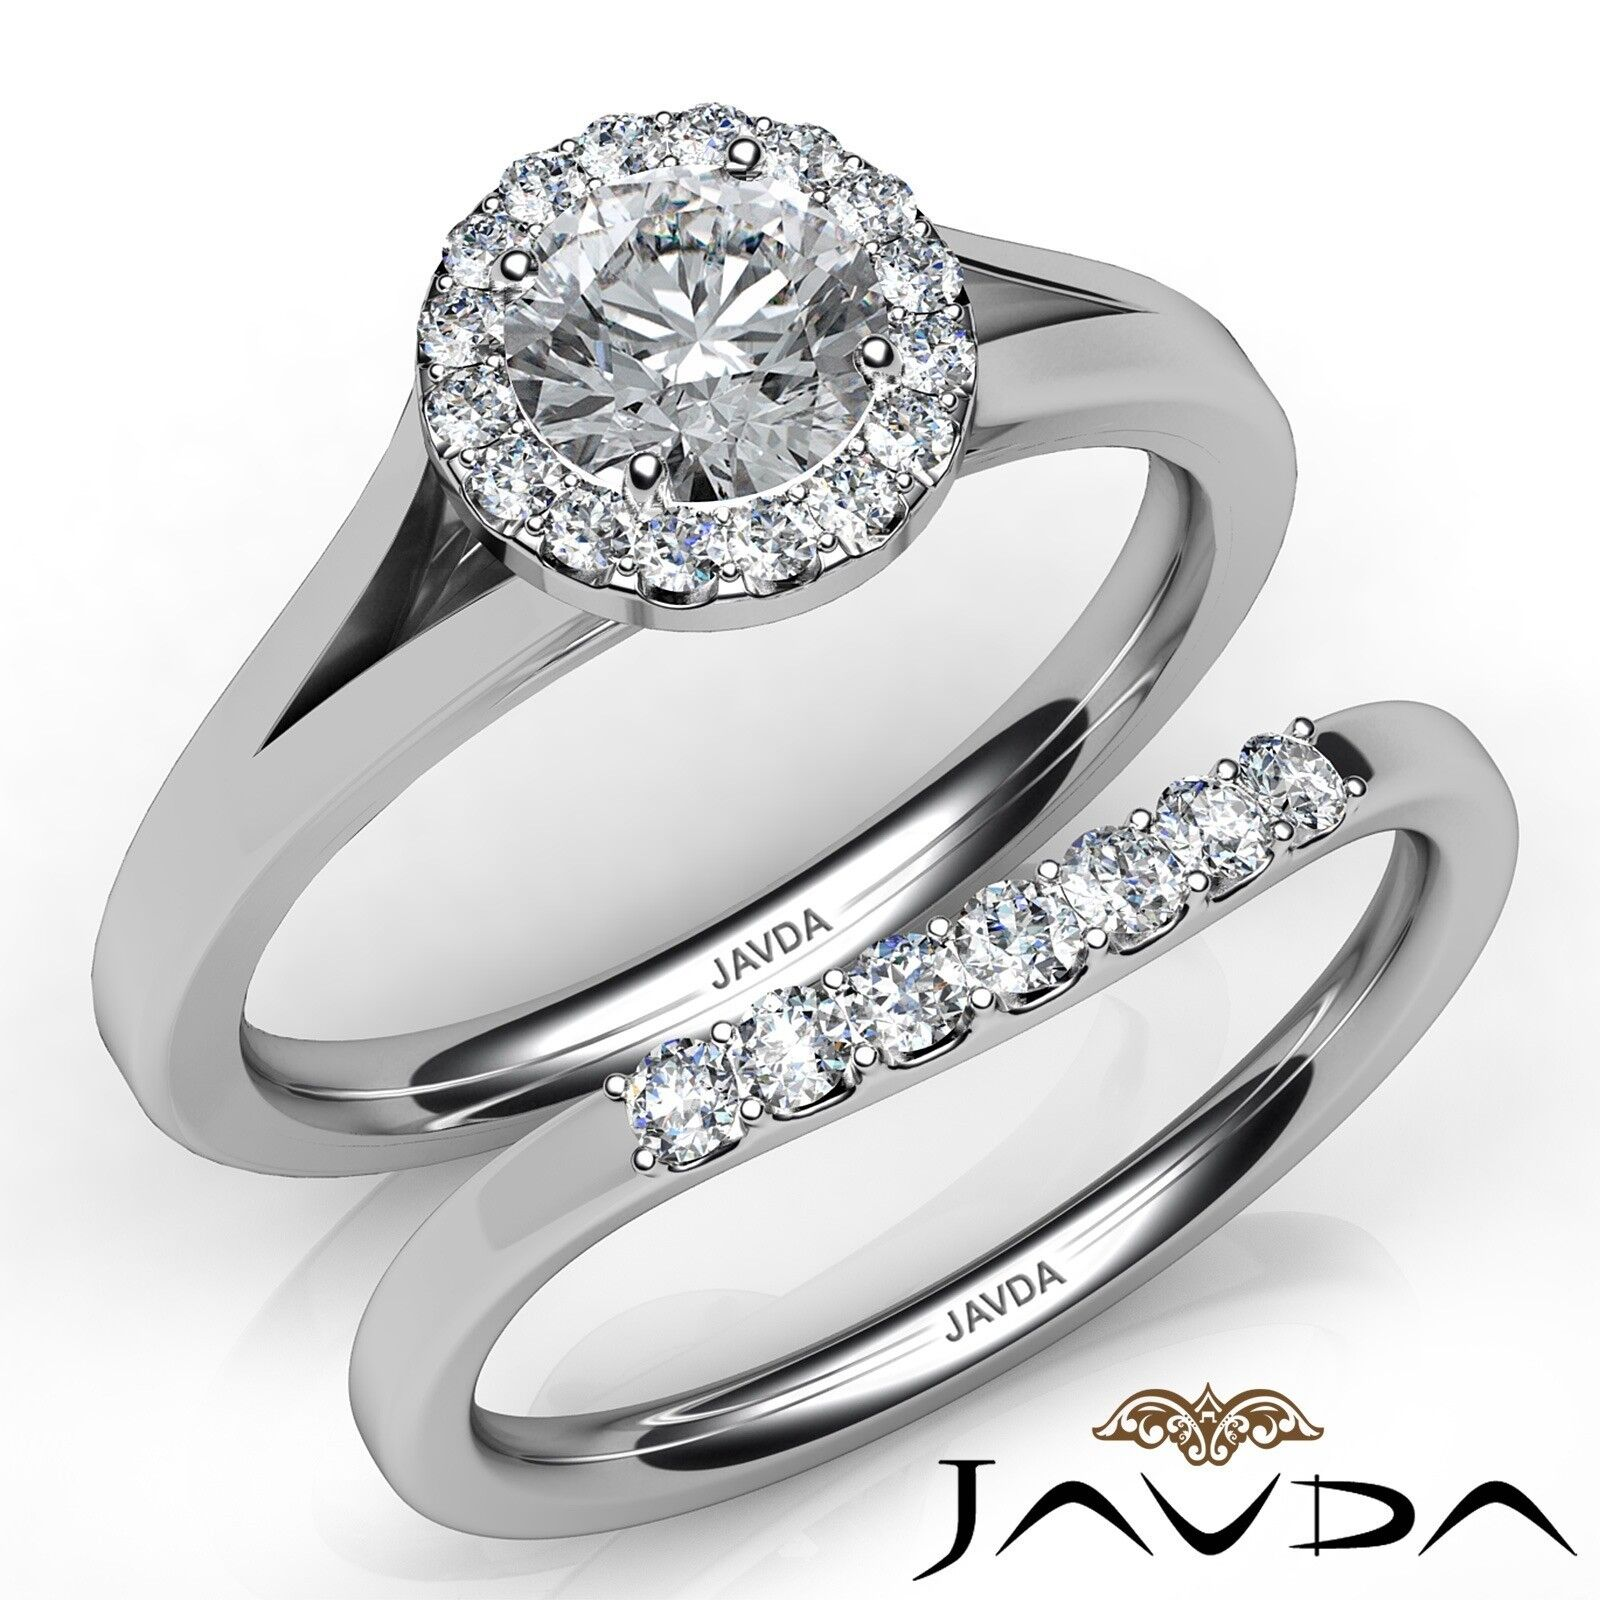 1.22ctw Classic Bridal Halo Pave Round Diamond Engagement Ring GIA G-VS1 W Gold